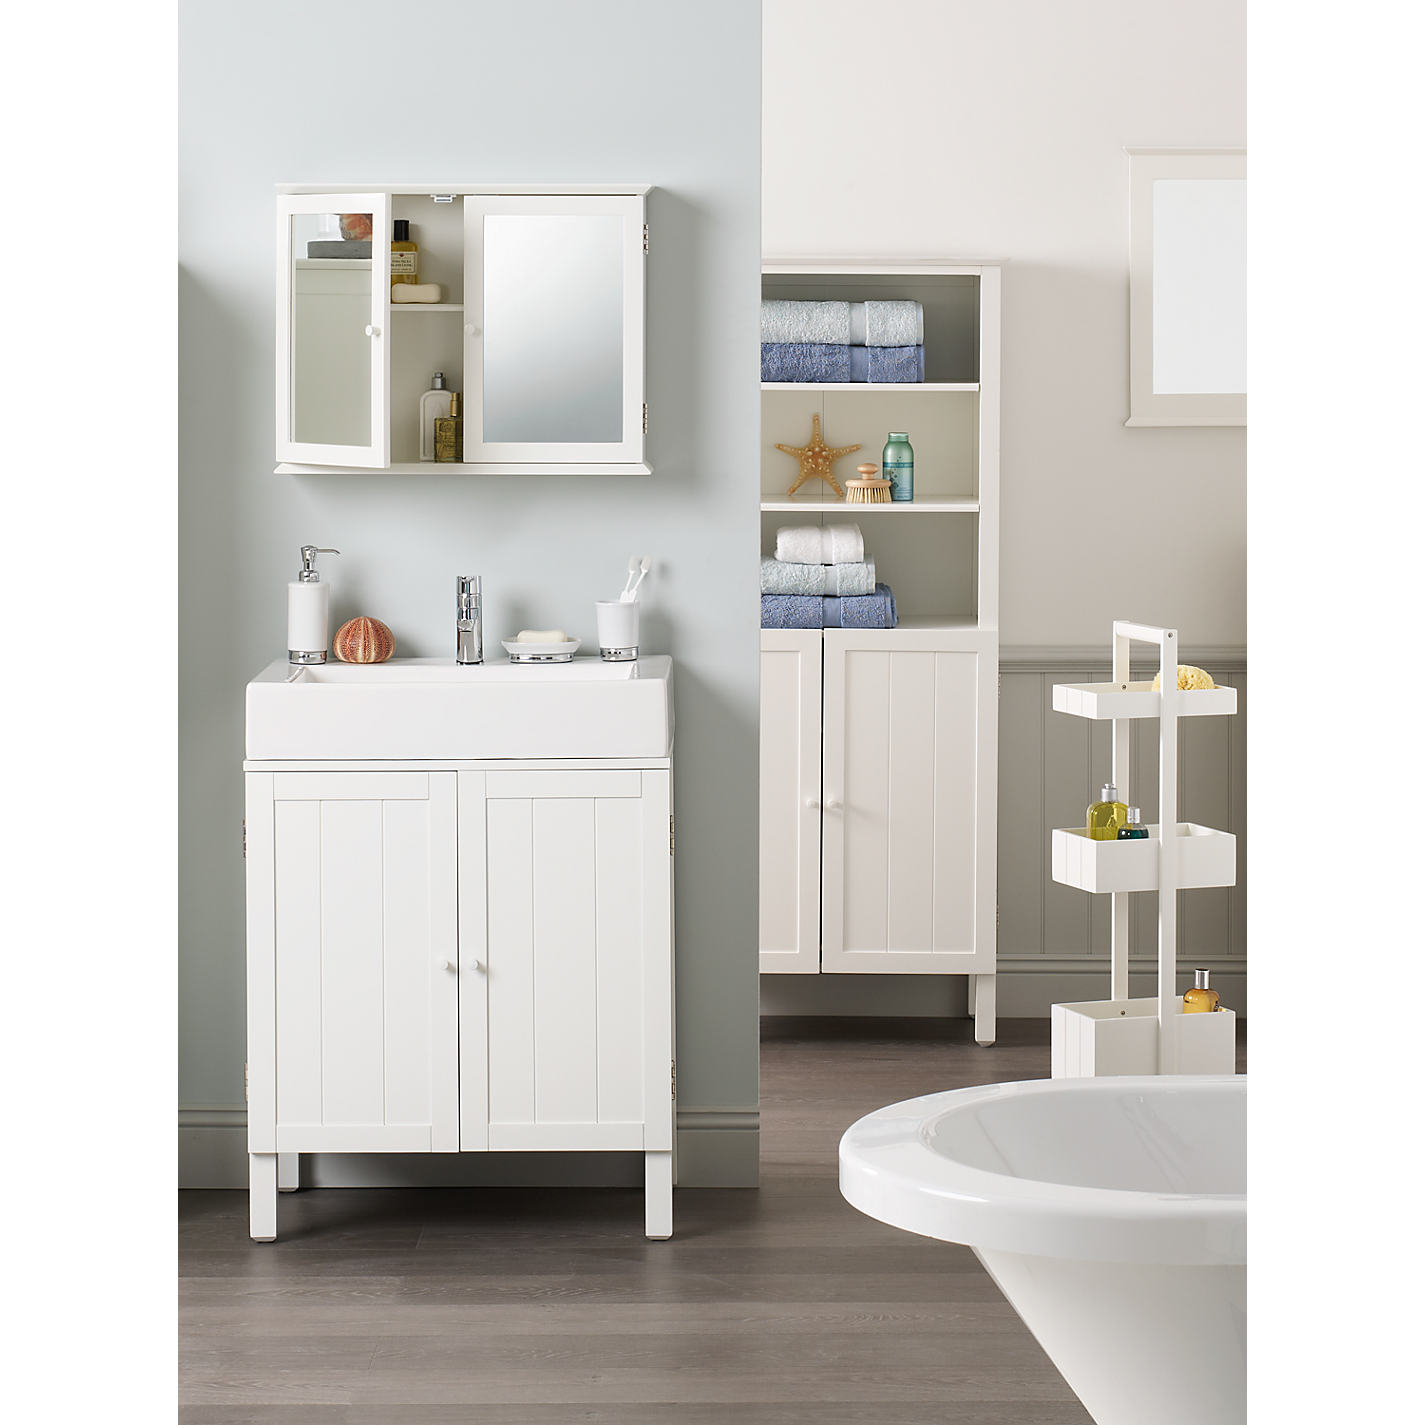 Great ... Buy John Lewis St Ives Double Mirrored Bathroom Cabinet Online At  Johnlewis.com ...